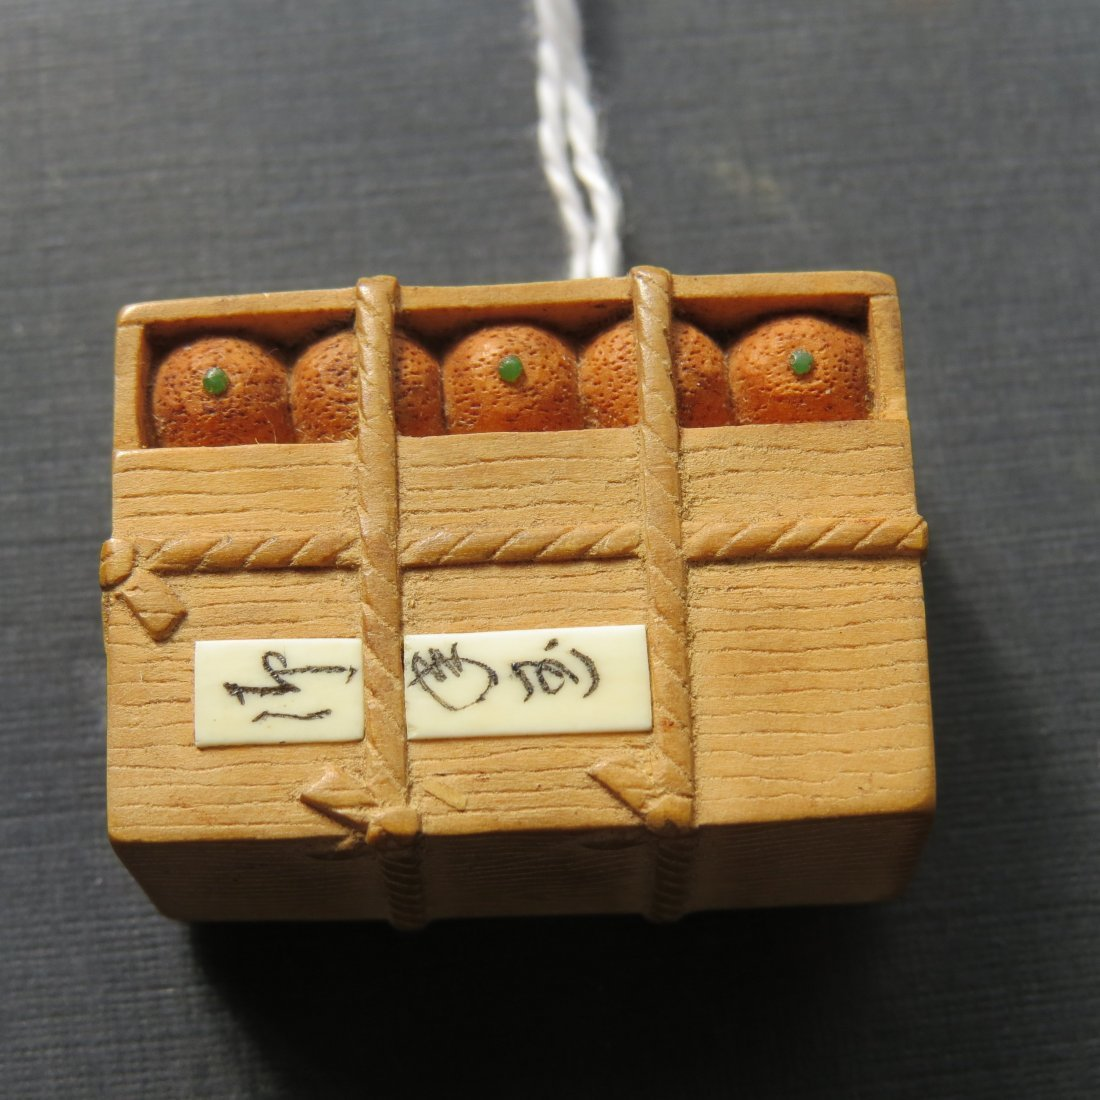 A Carved Wood Netsuke Depicting a Crate of Oranges. - 2